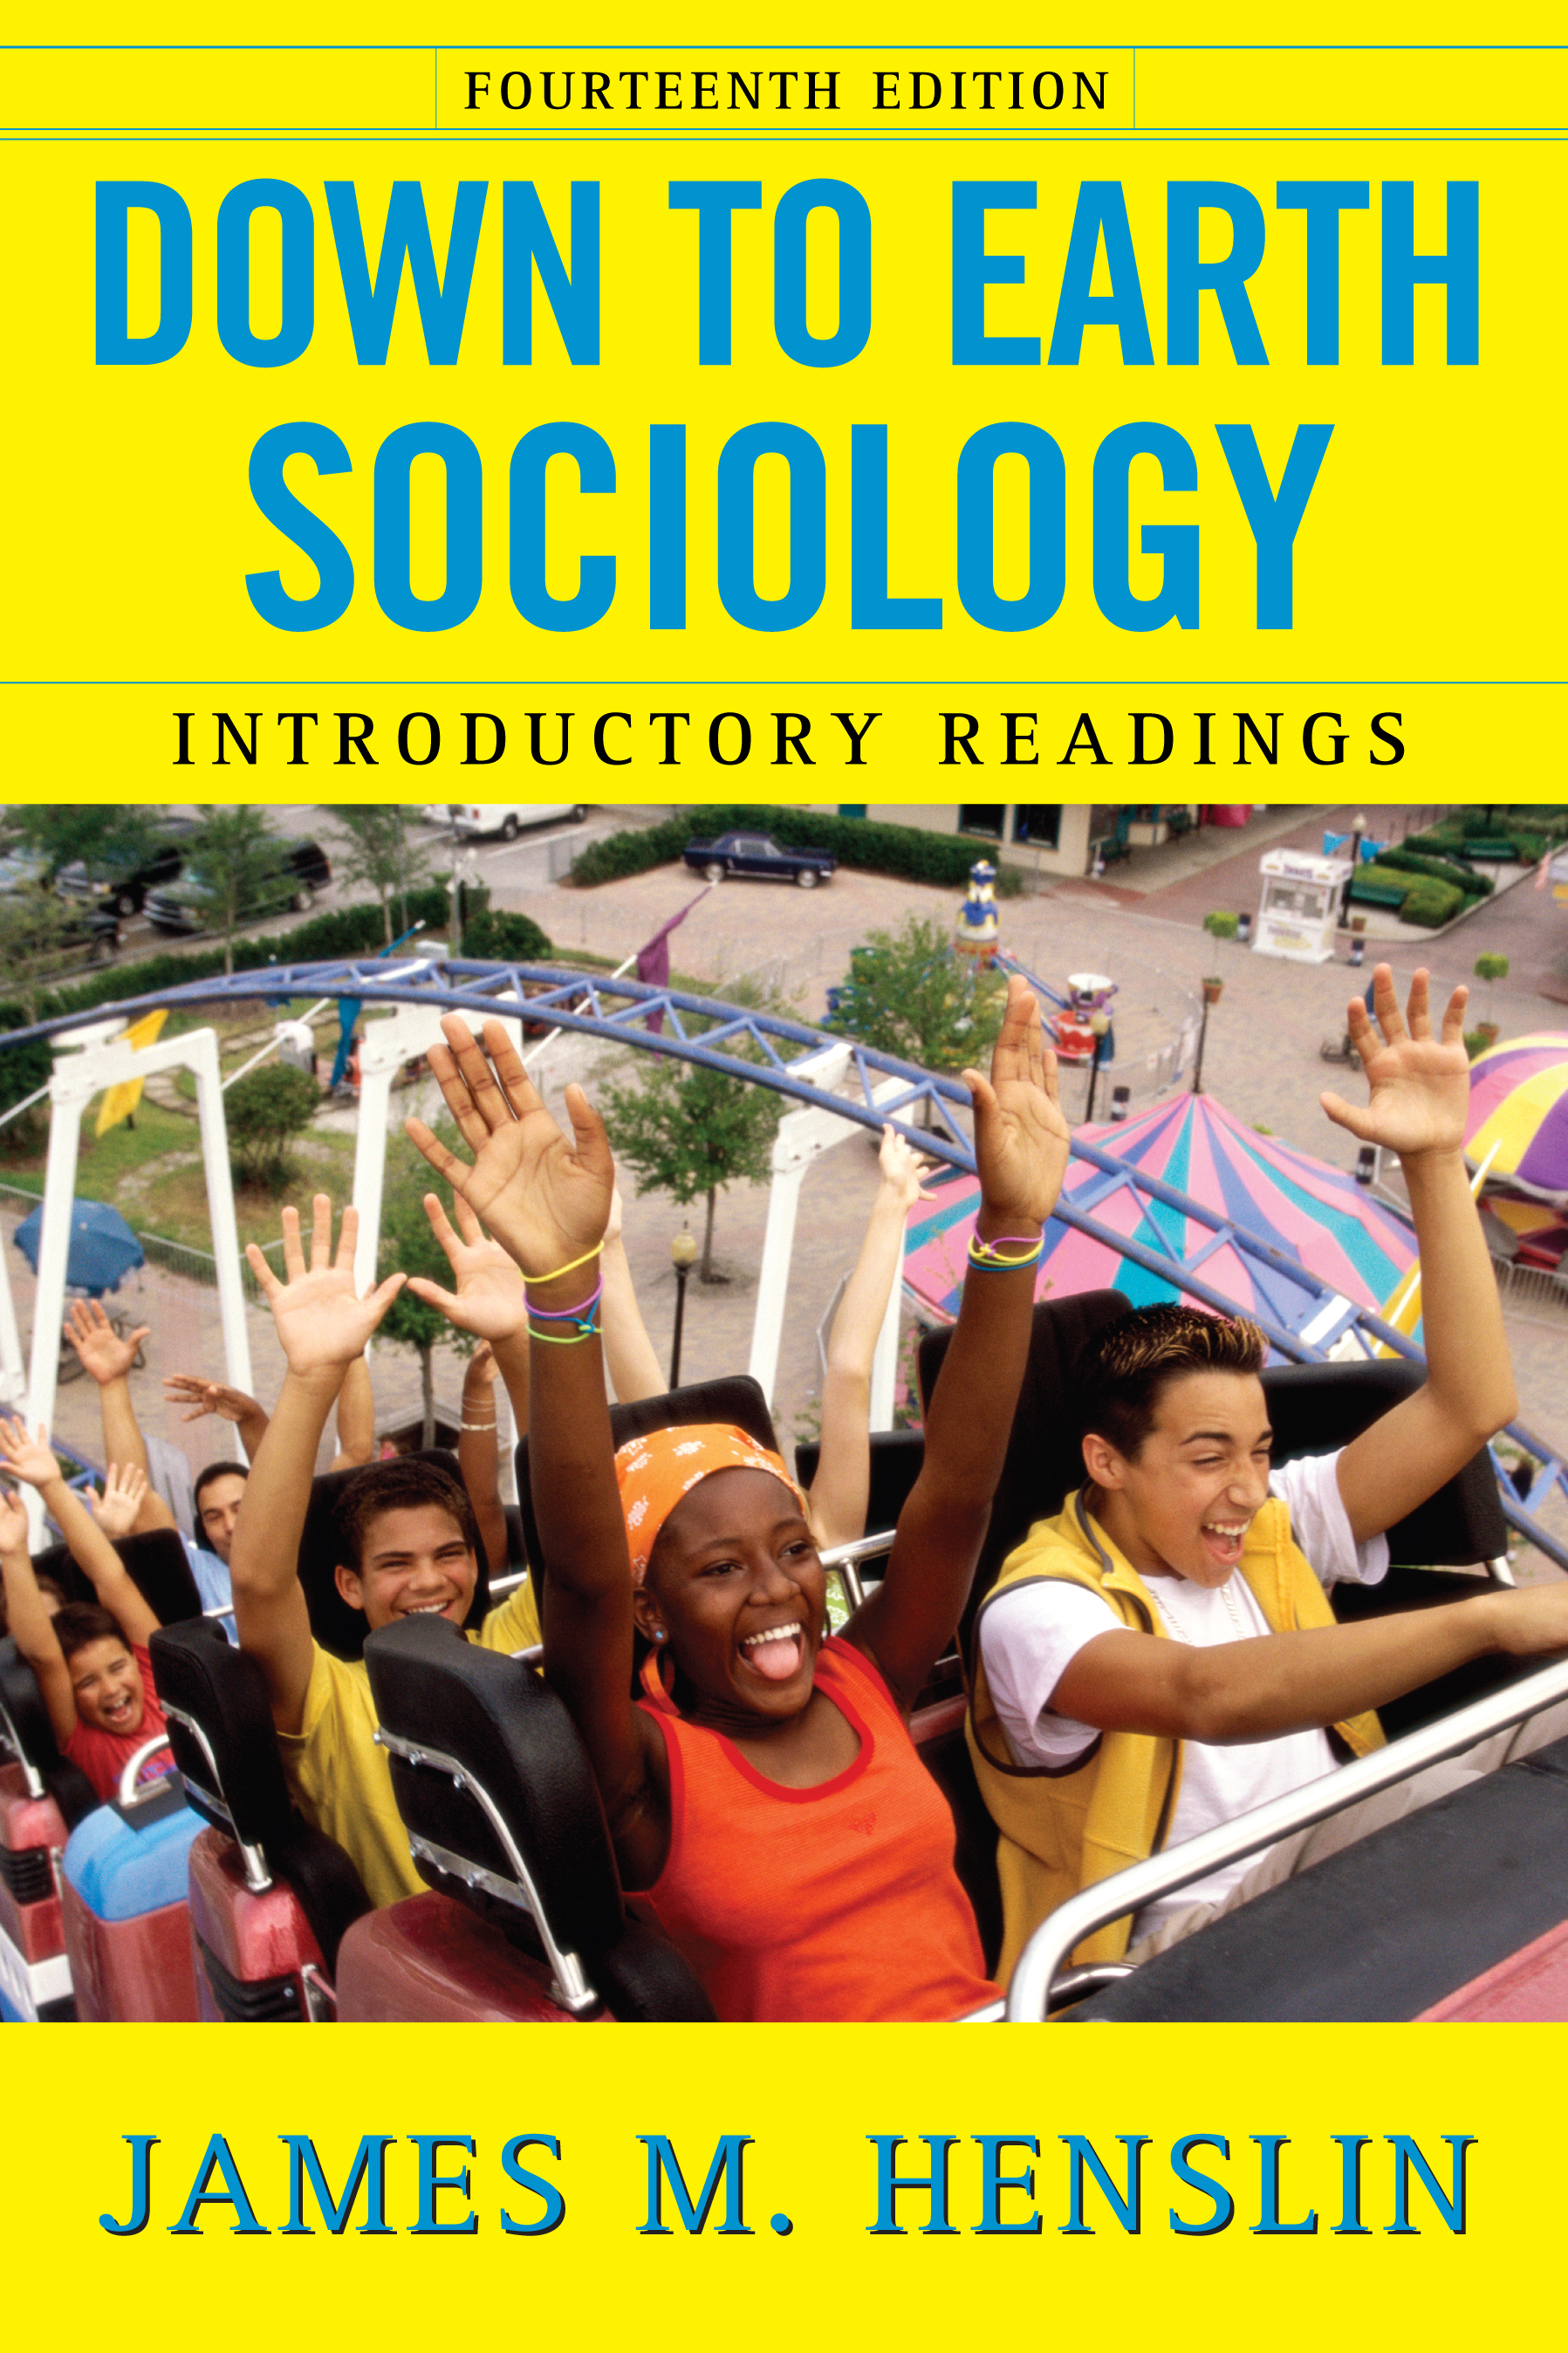 down to help our planet sociology Fourteenth edition pdf free